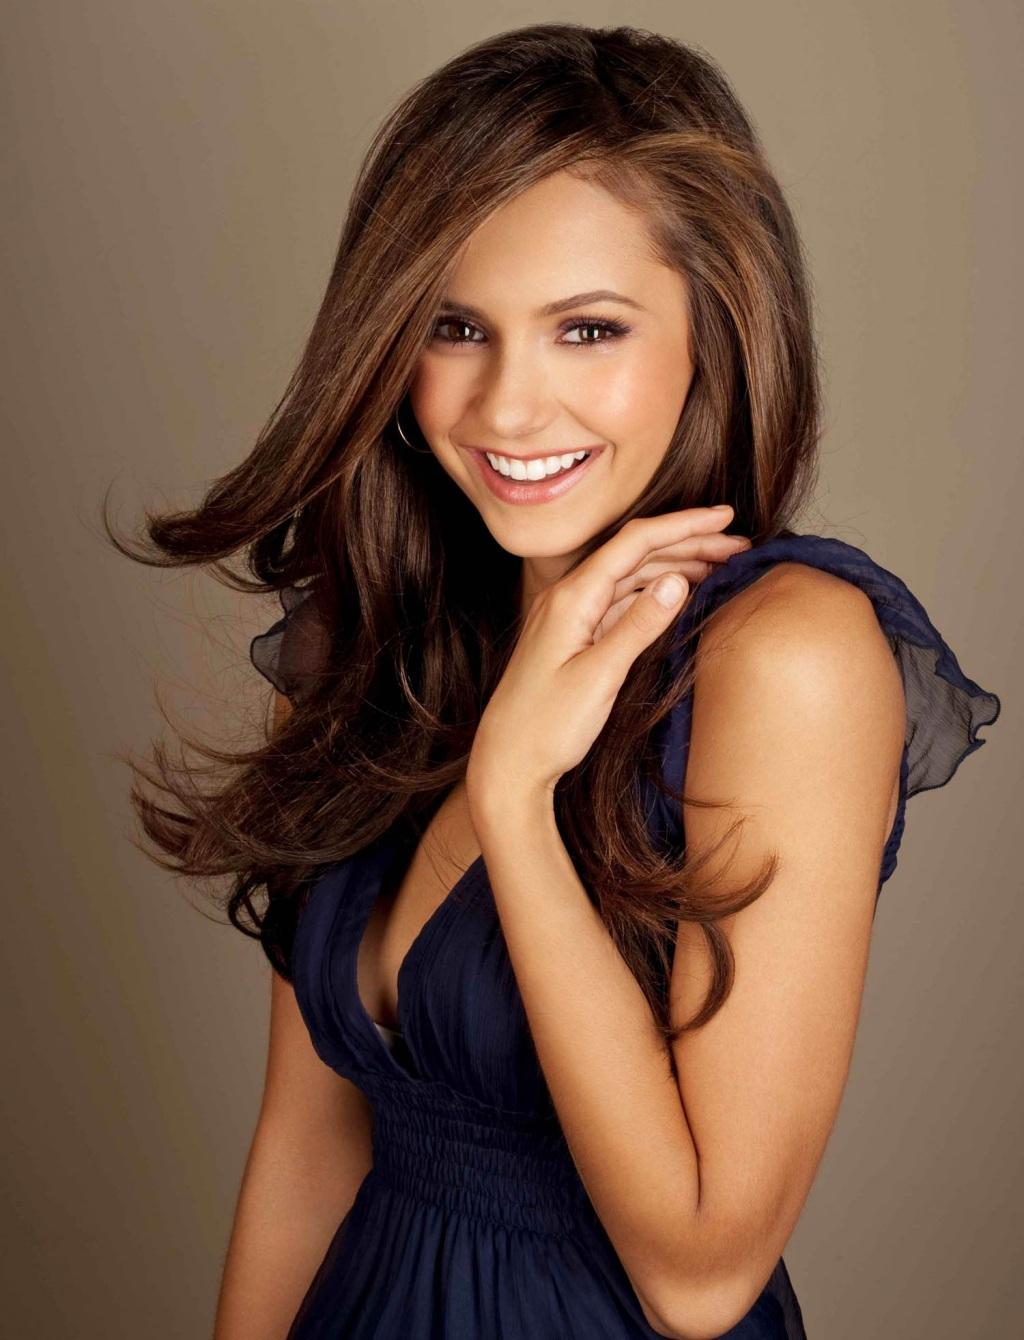 adela tessie nina dobrev. Black Bedroom Furniture Sets. Home Design Ideas